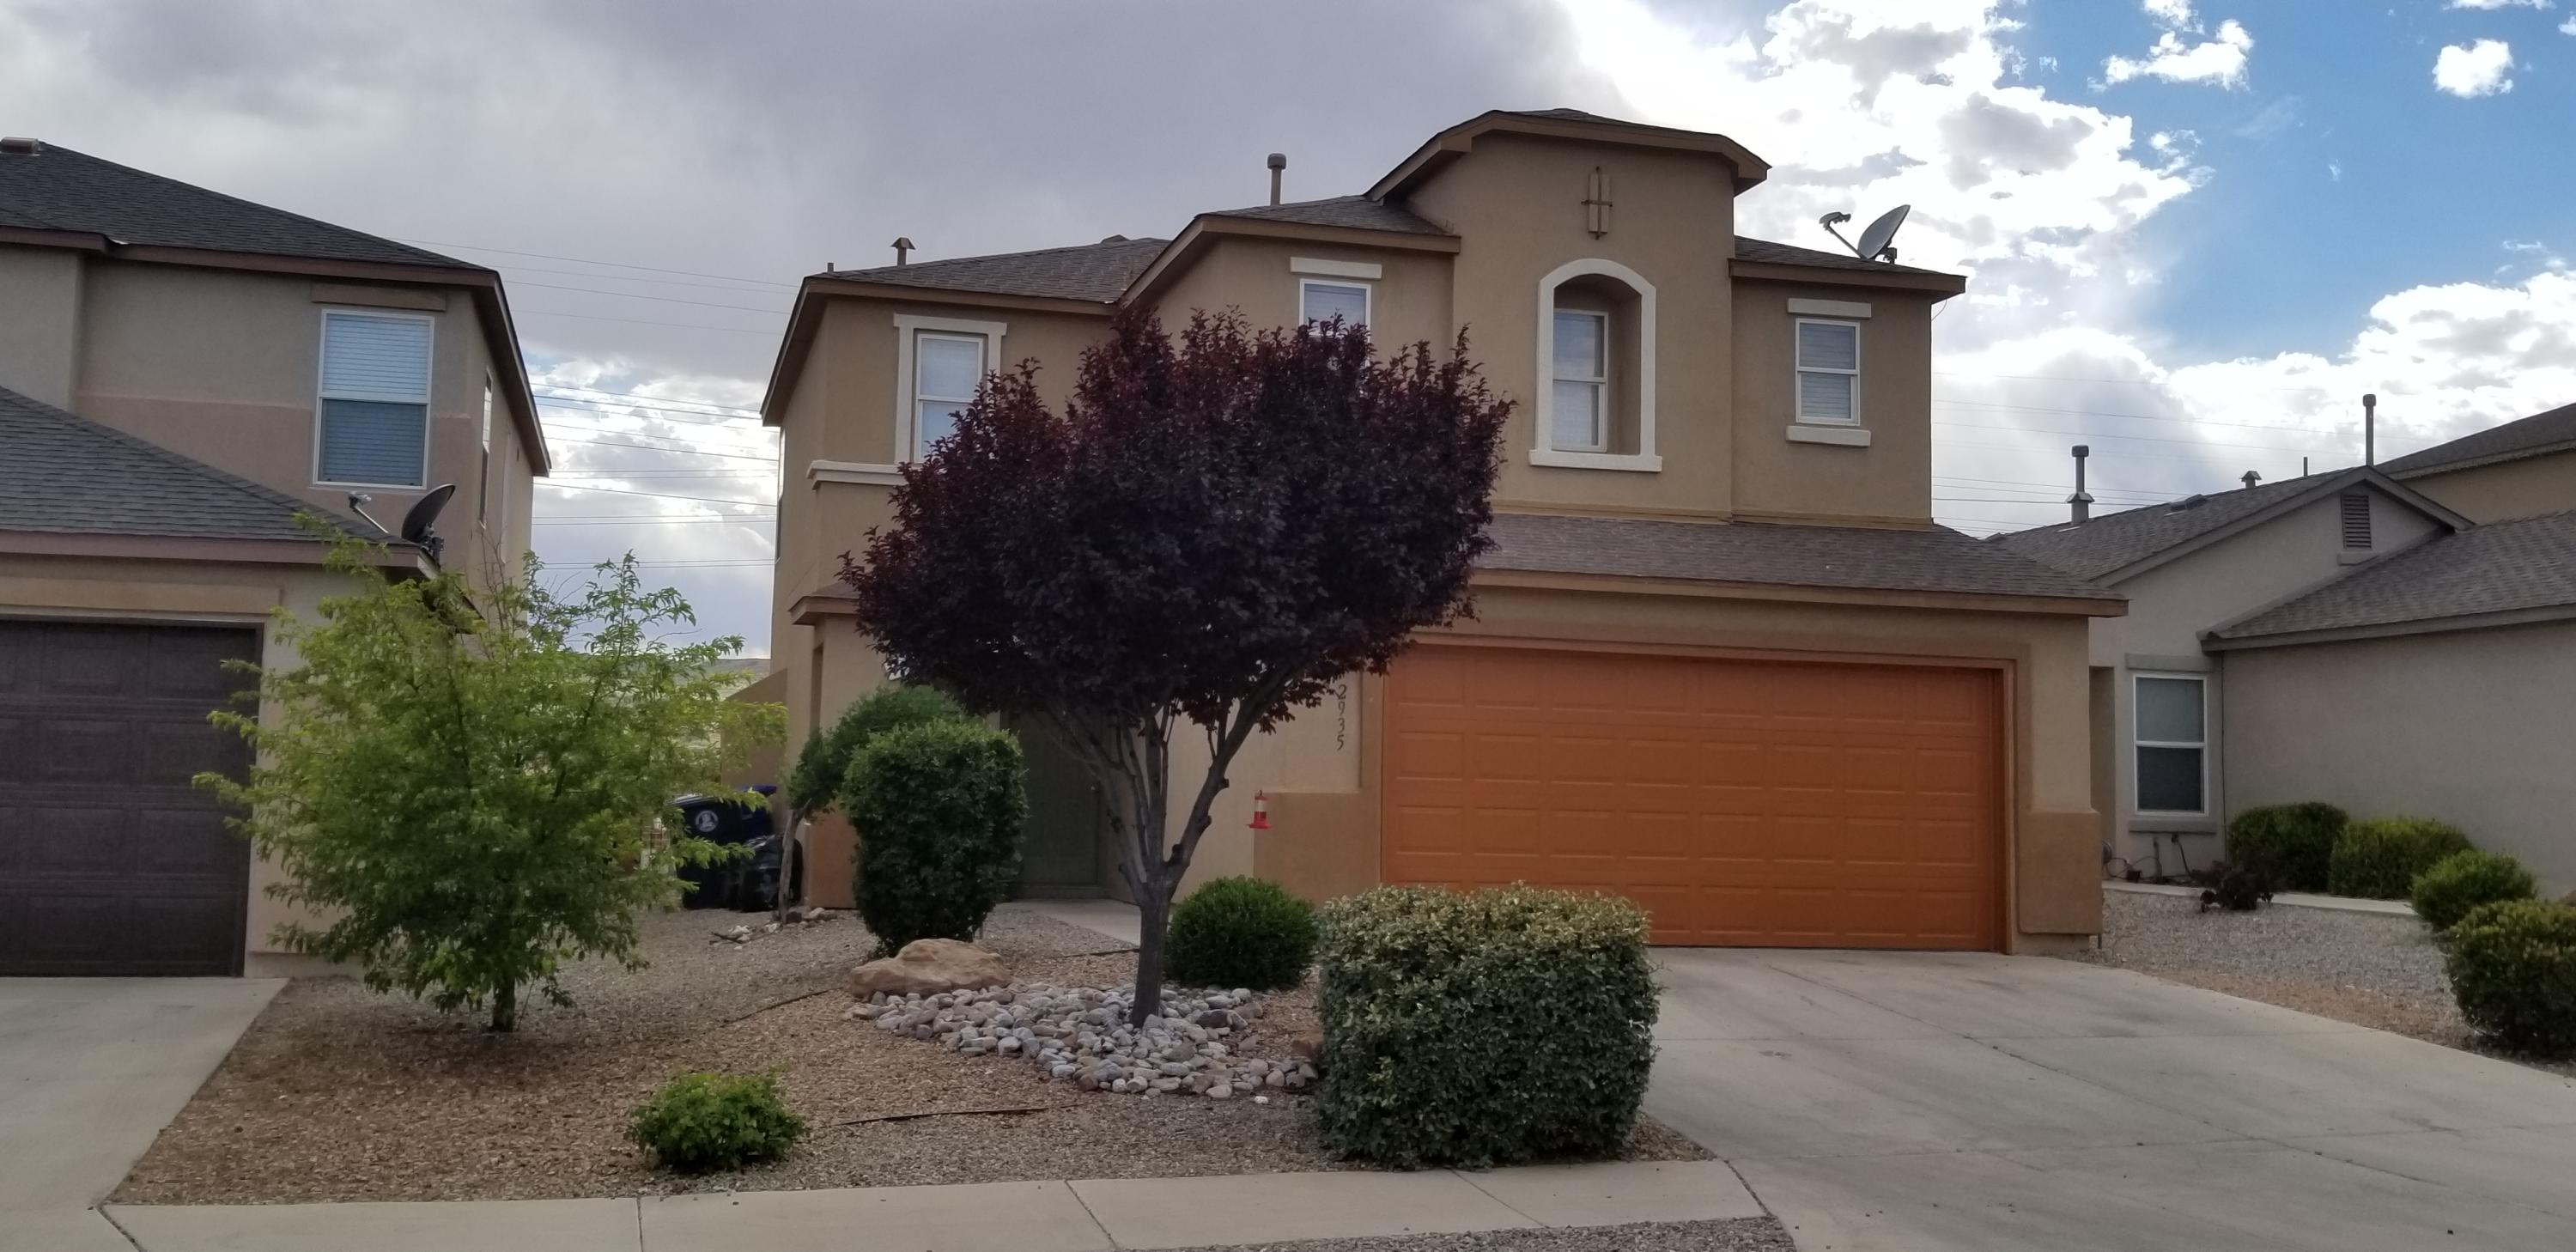 A great opportunity! This beautiful home is a KB Homes Hacienda Series. The home is in a gated community and has an inviting open floor plan with the nice size bedrooms. Large Backyard will be enjoyable for those nice Summer days and sunsets.